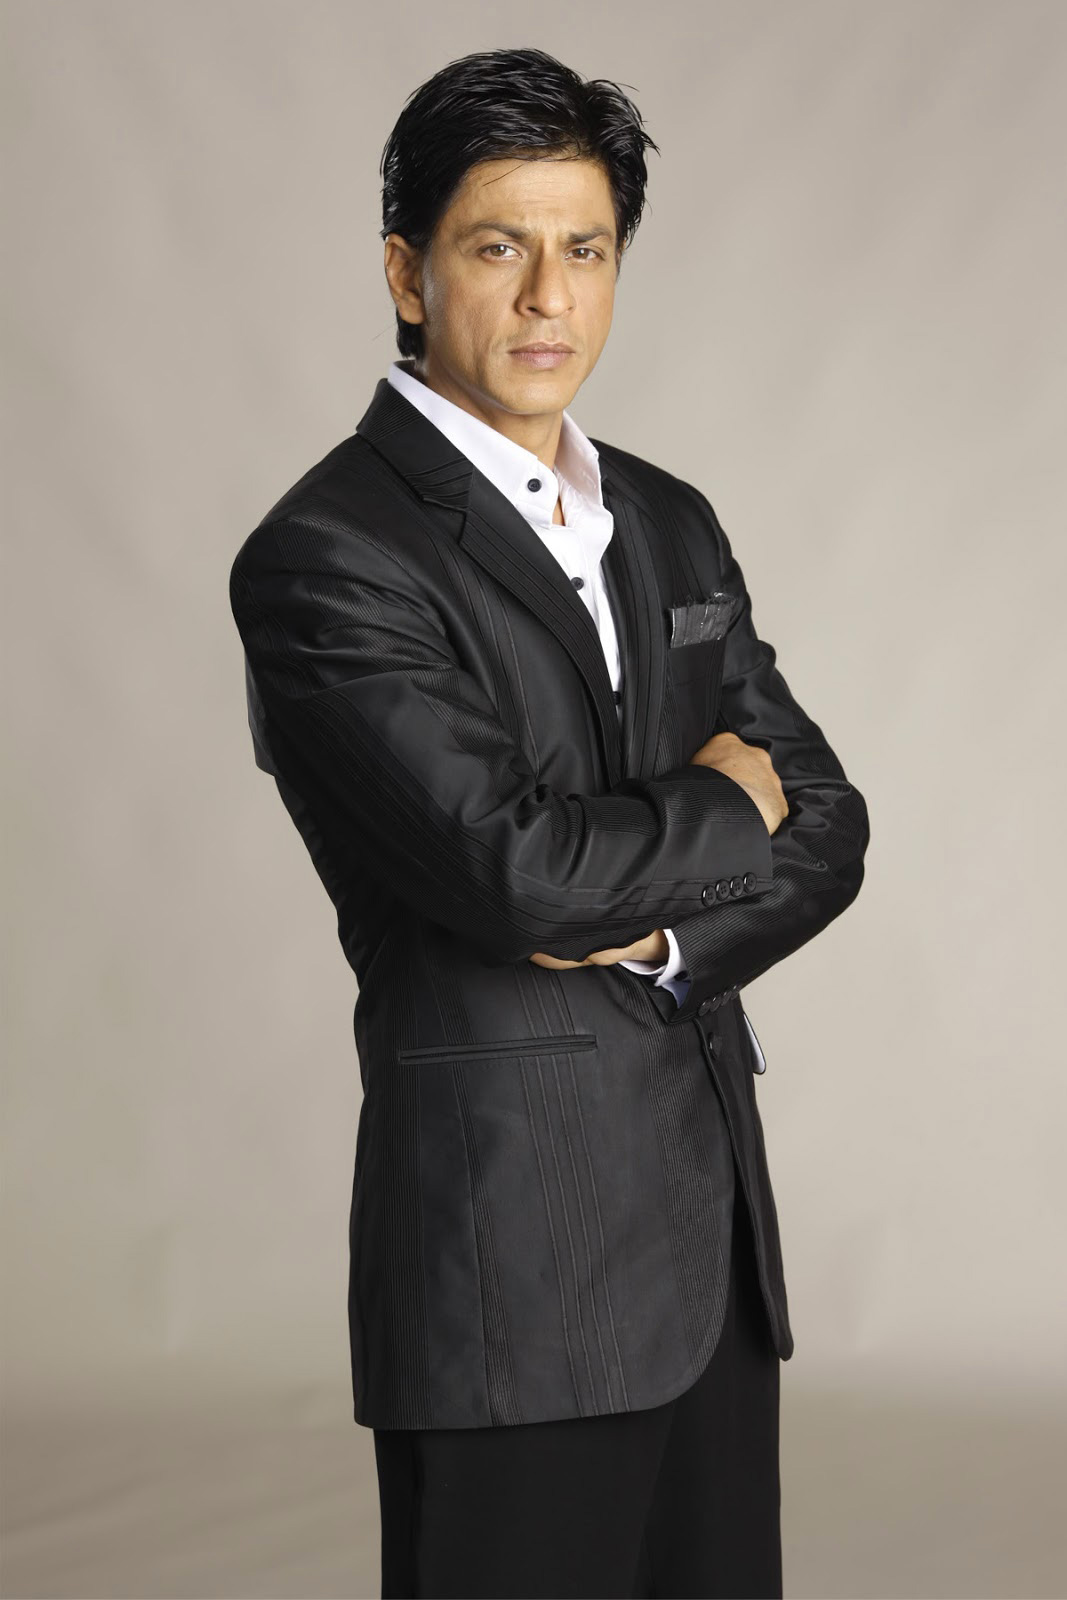 SHAHRUKH KHAN IMAGES PHOTO WALLPAPER FOR FACEBOOK